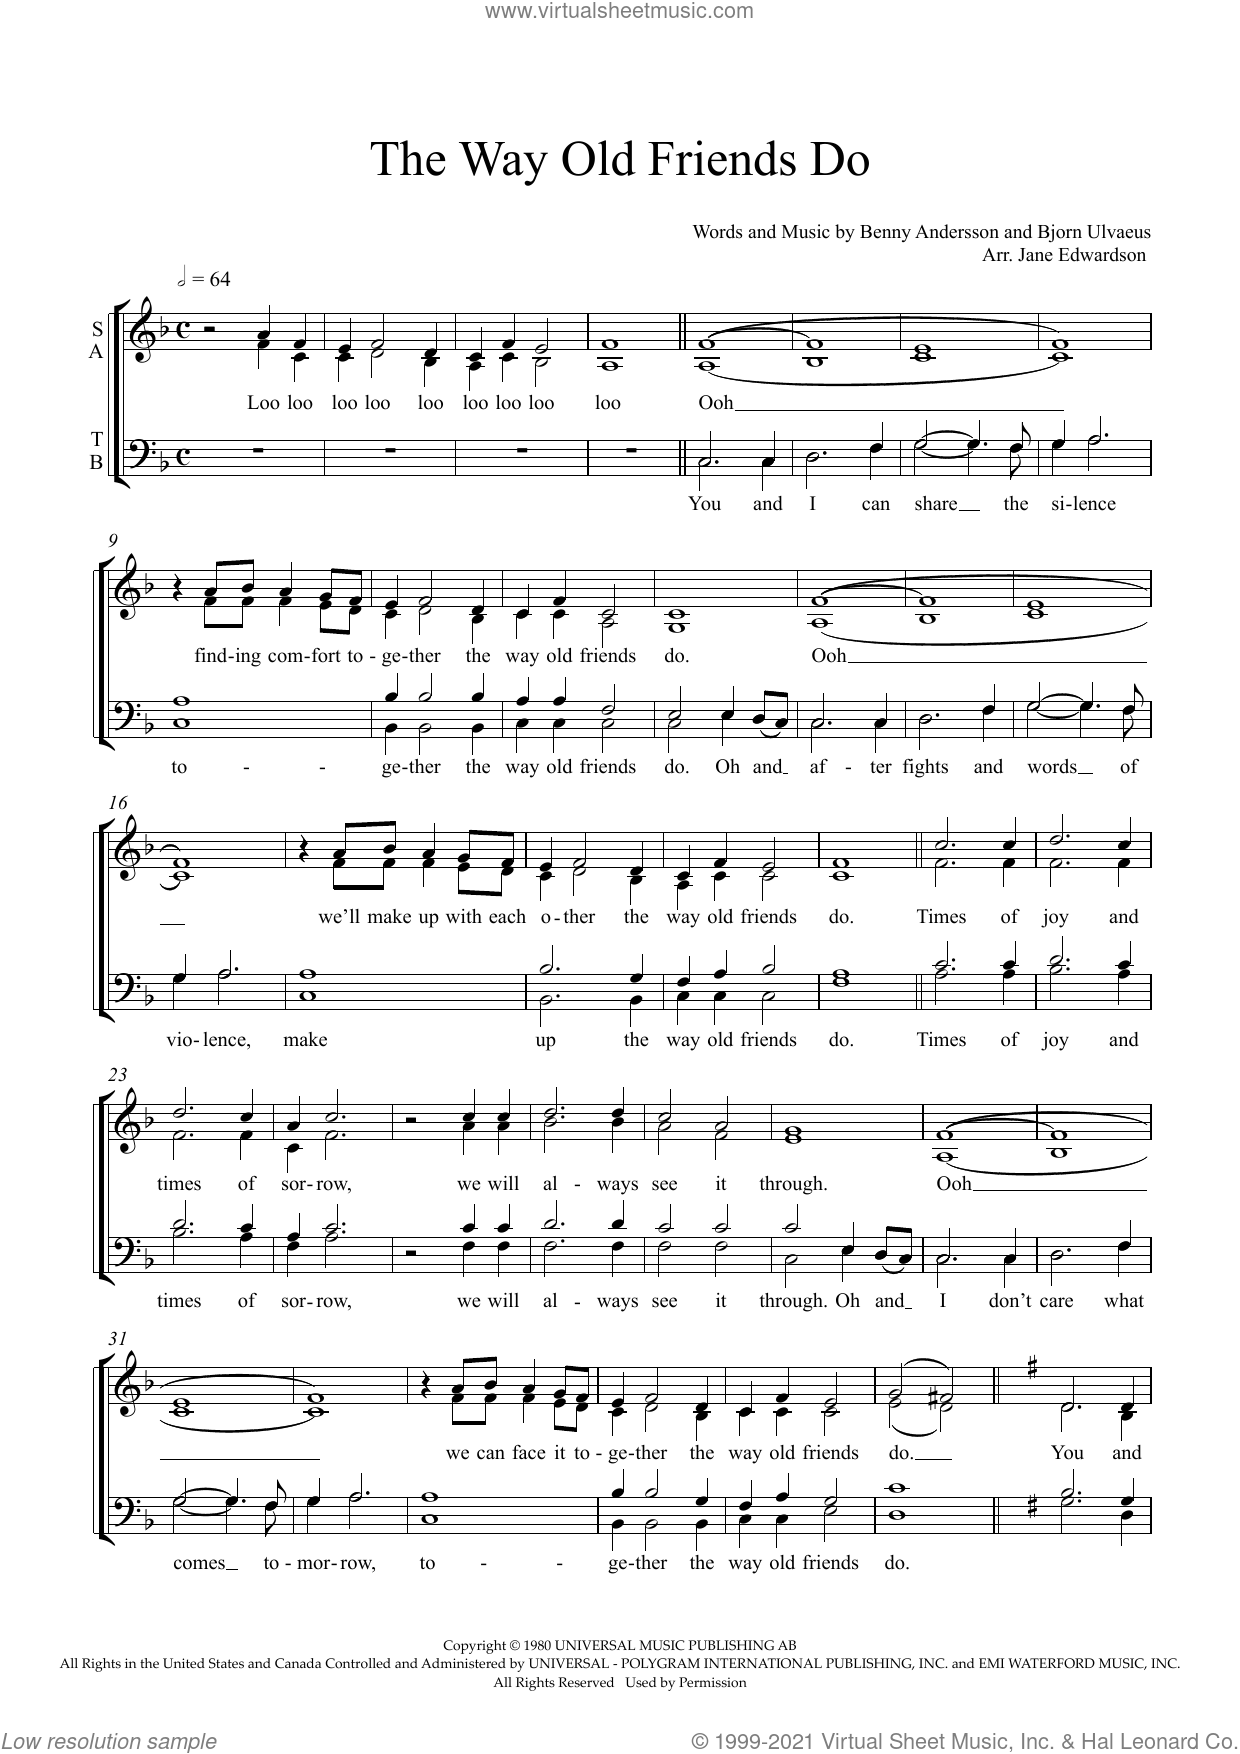 The Way Old Friends Do (arr. Jane Edwardson) sheet music for choir (SATB: soprano, alto, tenor, bass) by ABBA, Jane Edwardson, Benny Andersson and Bjorn Ulvaeus, intermediate skill level